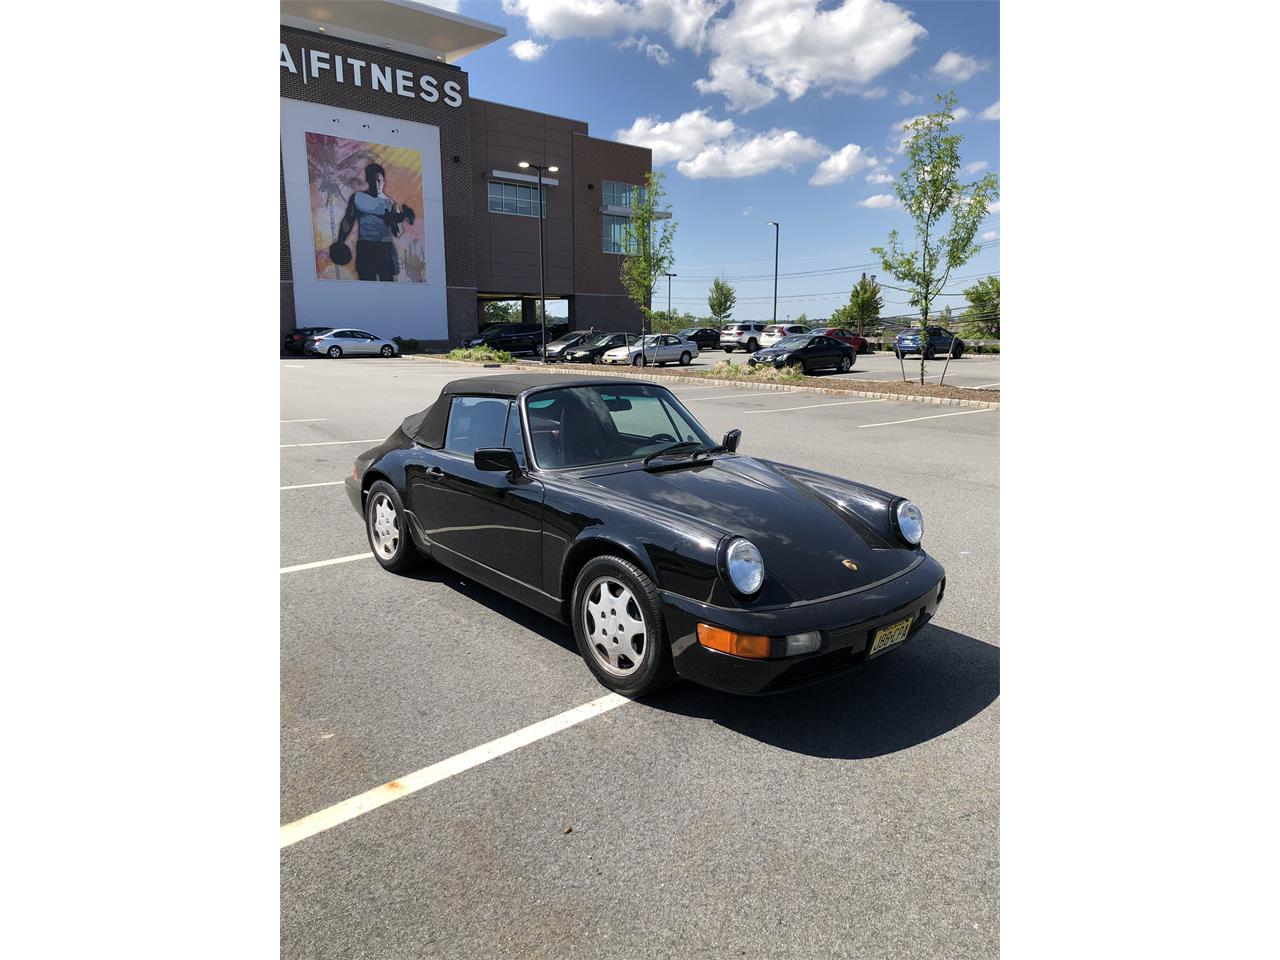 Large Picture of 1991 Porsche 911 Carrera 4 Cabriolet located in New Jersey - $49,000.00 - NLN4